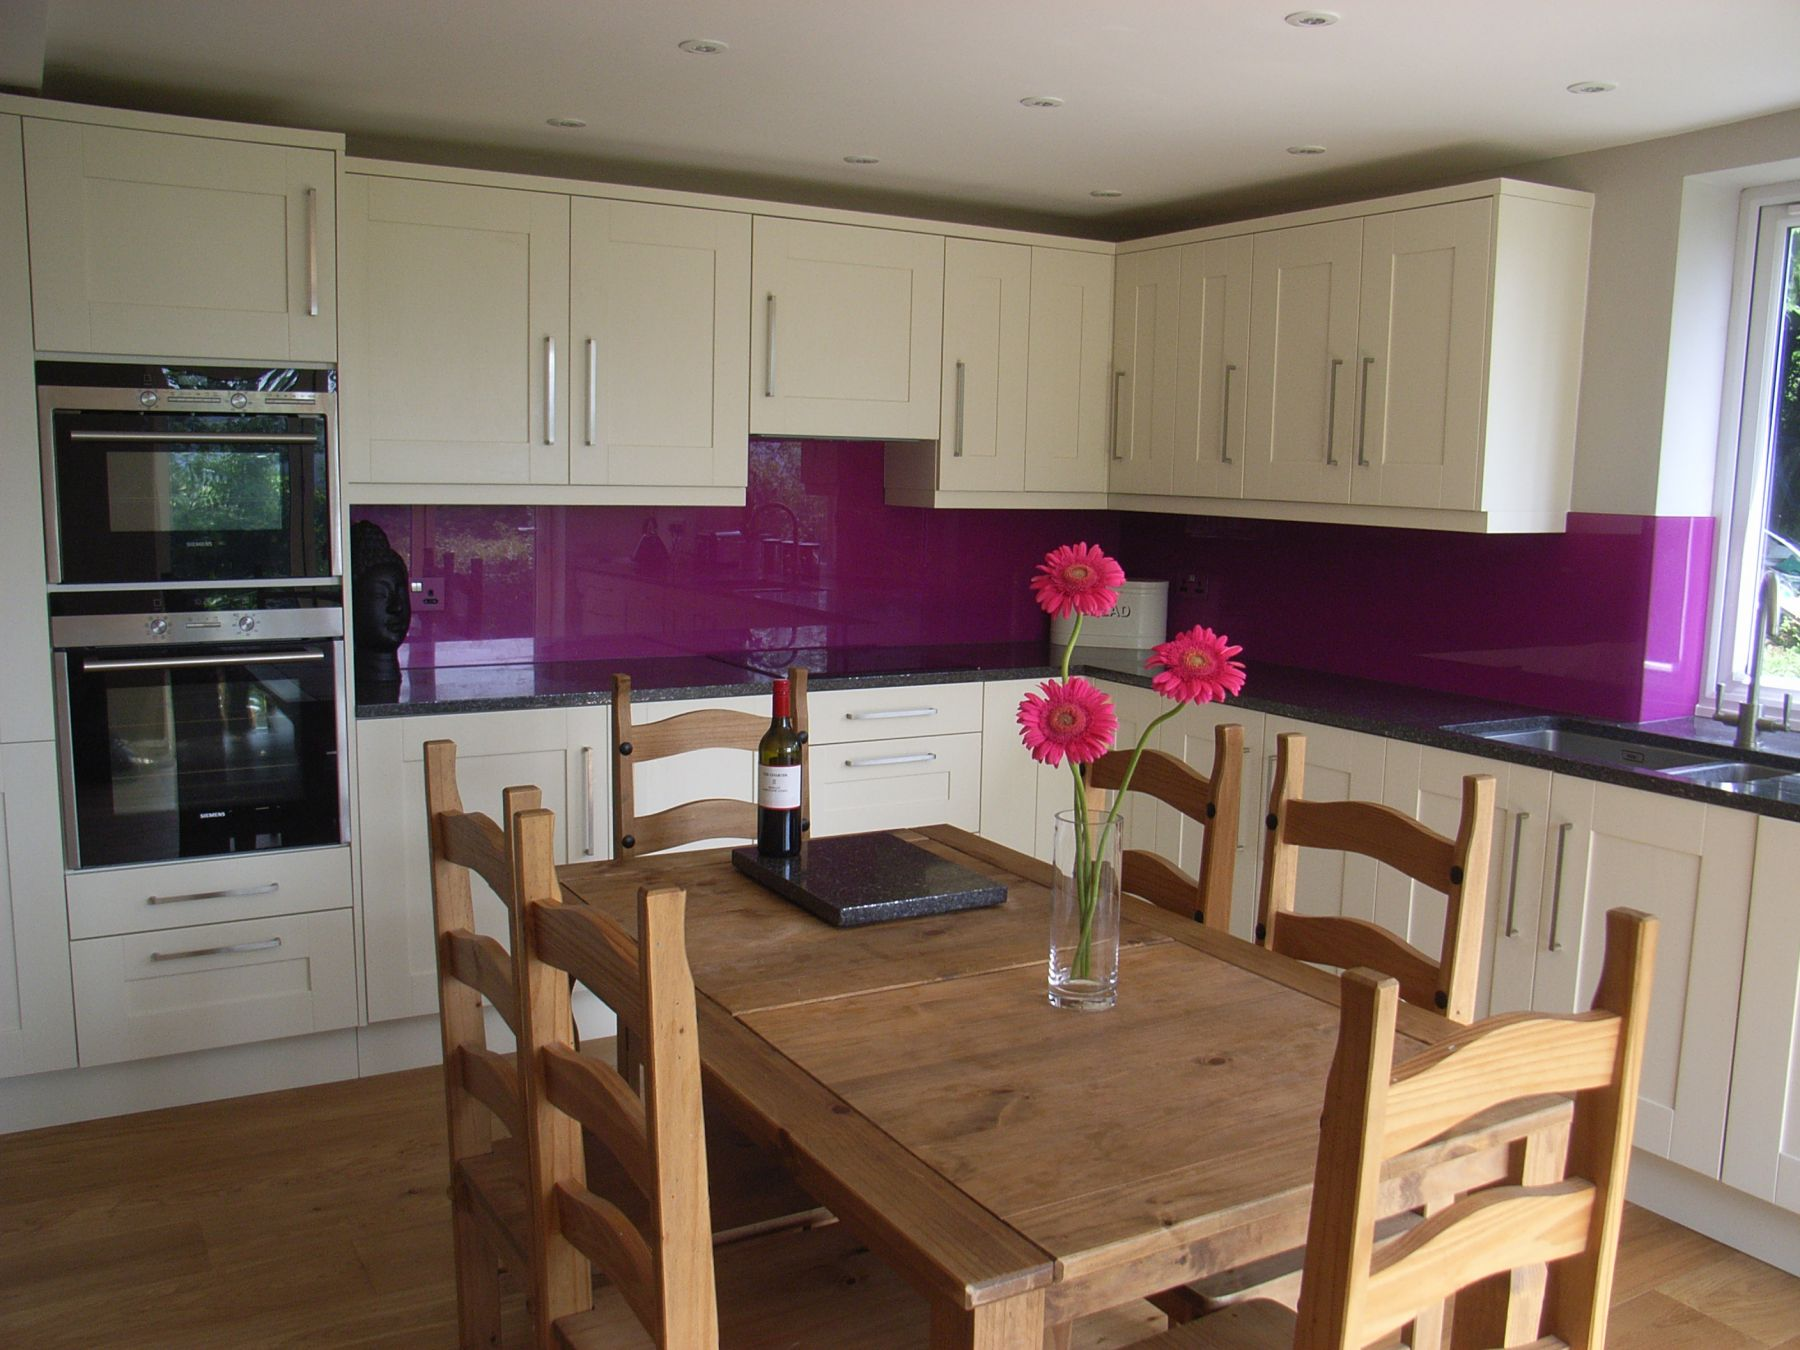 kitchen with purple splashback